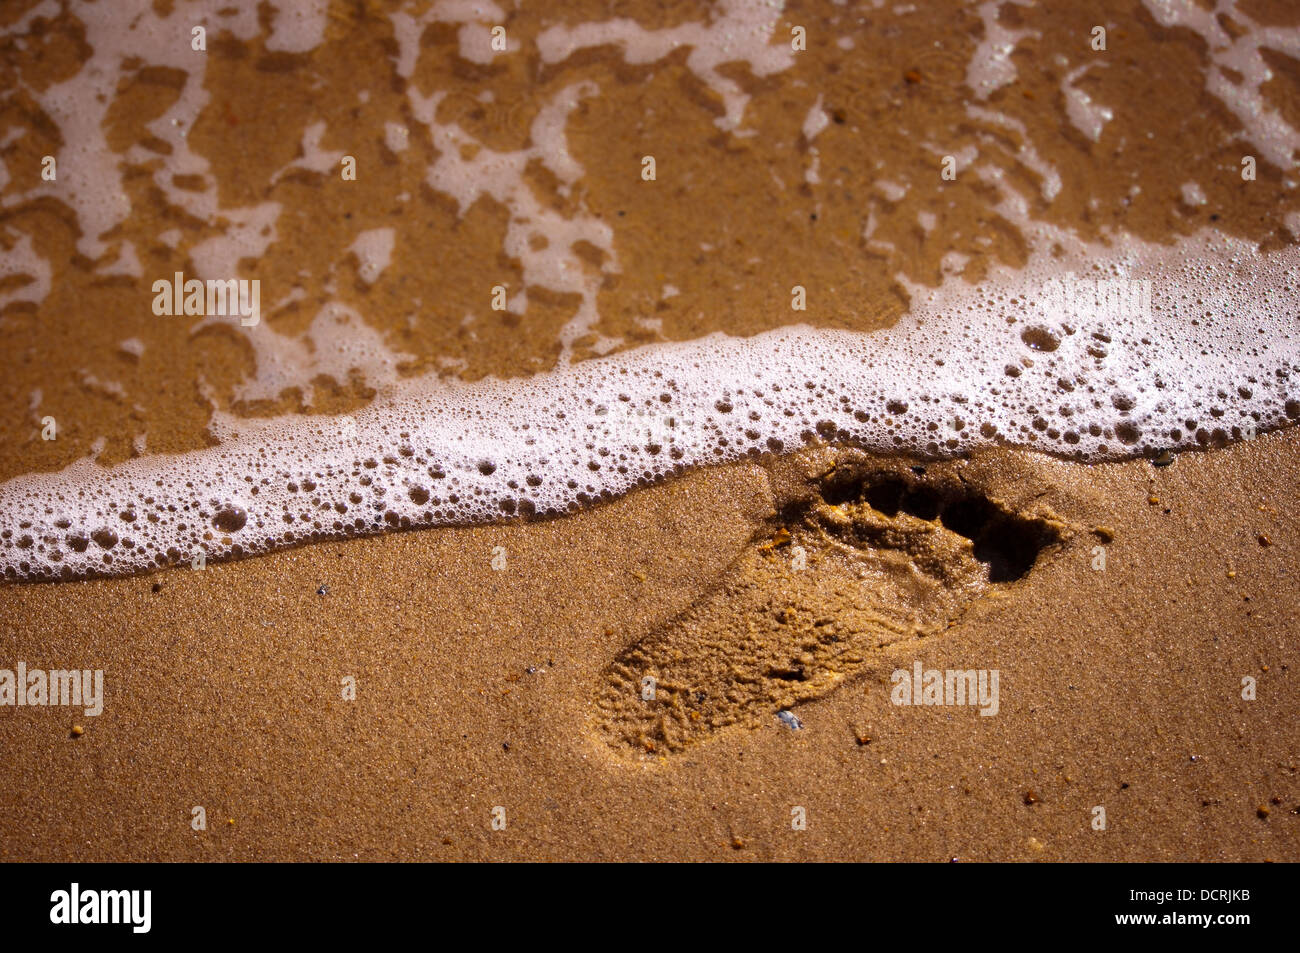 bare foot print marks on Norfolk sand Beach - Stock Image